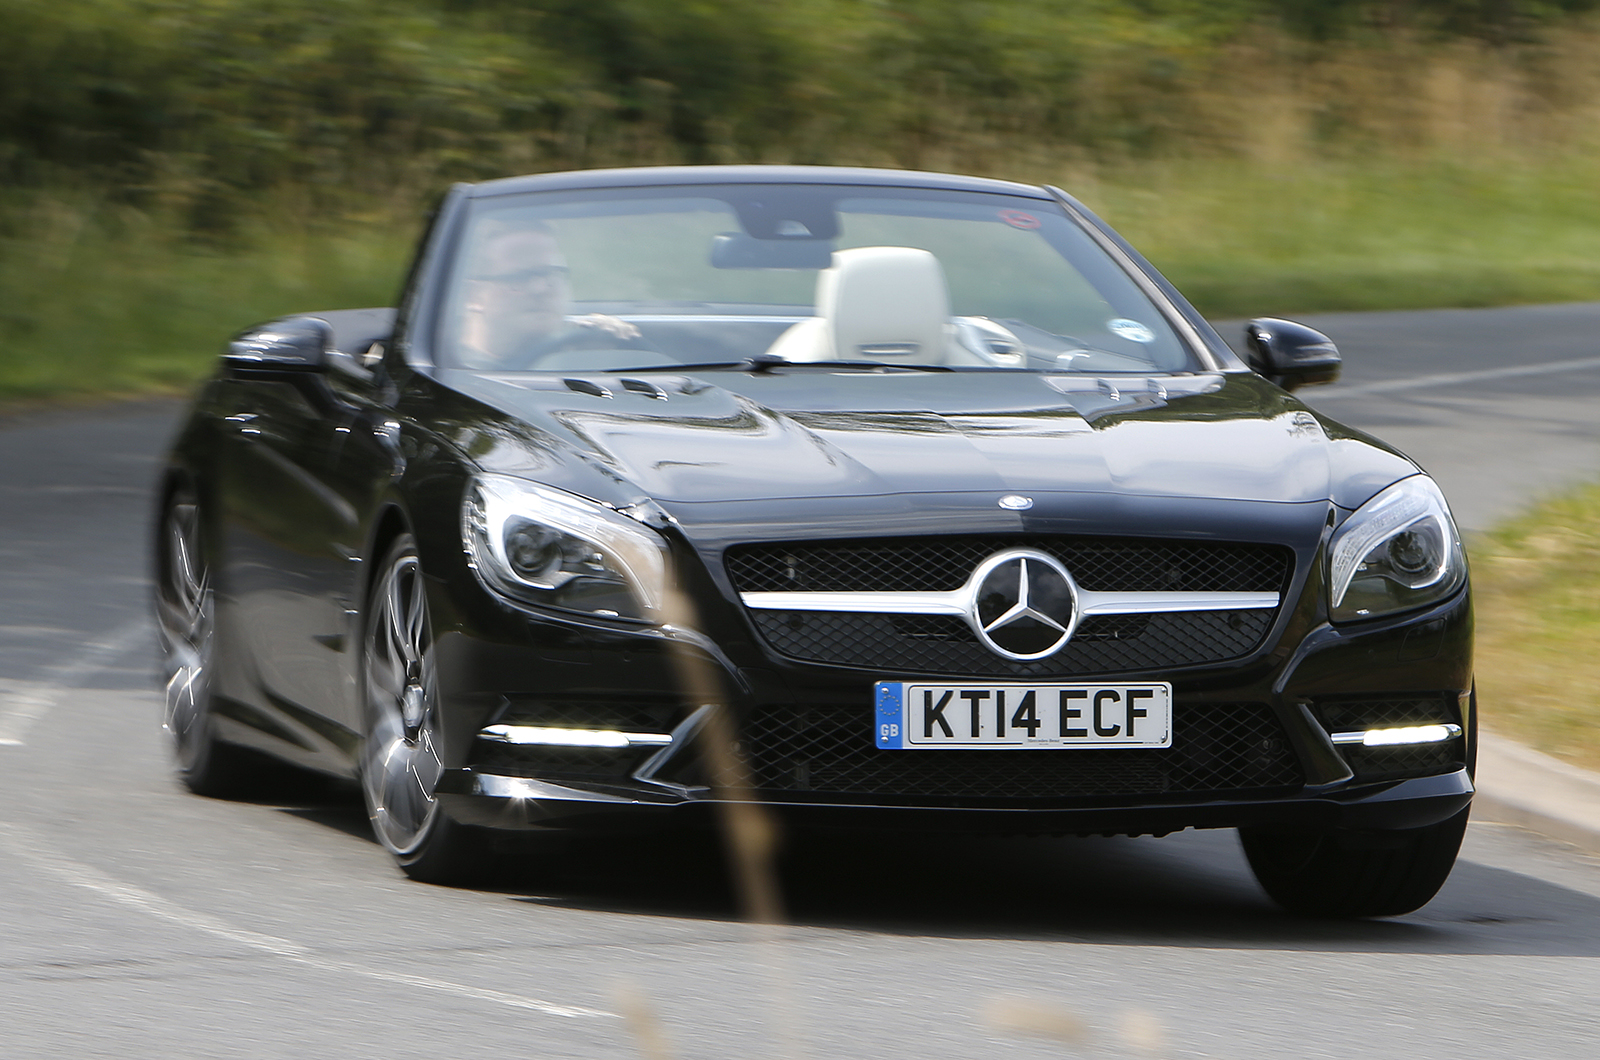 Mercedes benz sl400 review 2017 2018 best cars reviews for Mercedes benz sl400 price